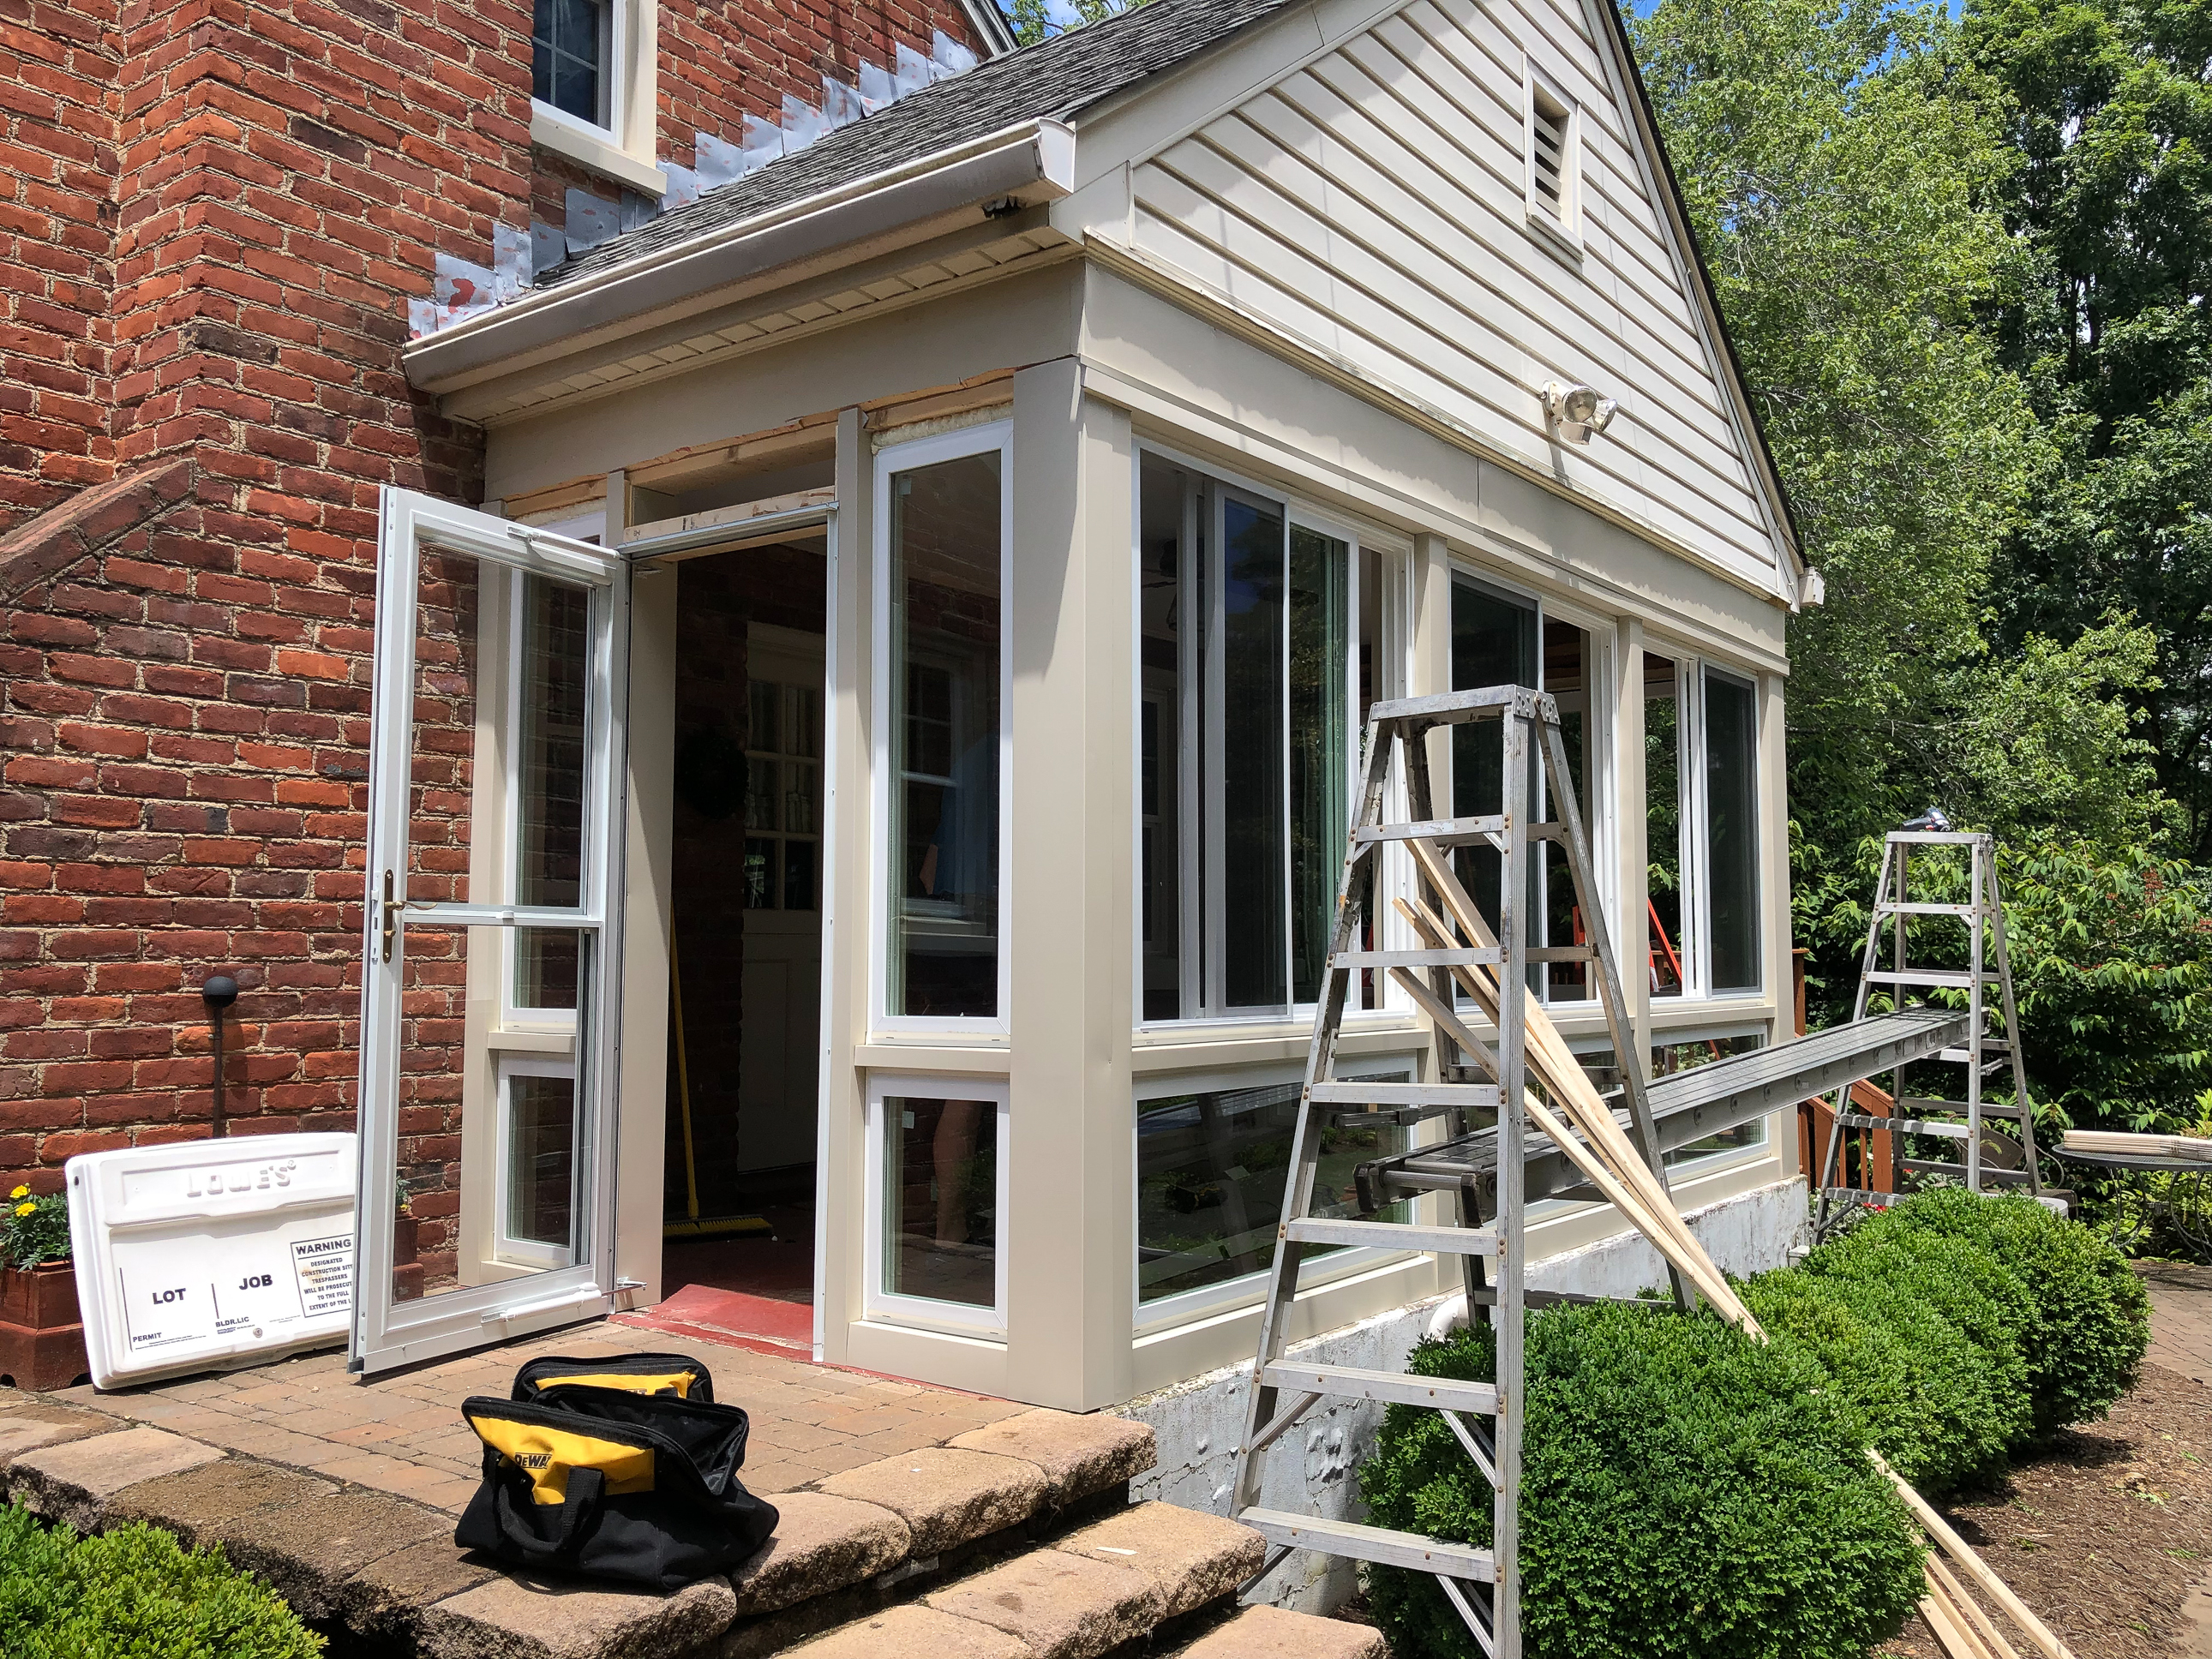 Converting a screened porch to a sunroom. Progress photo of the project.